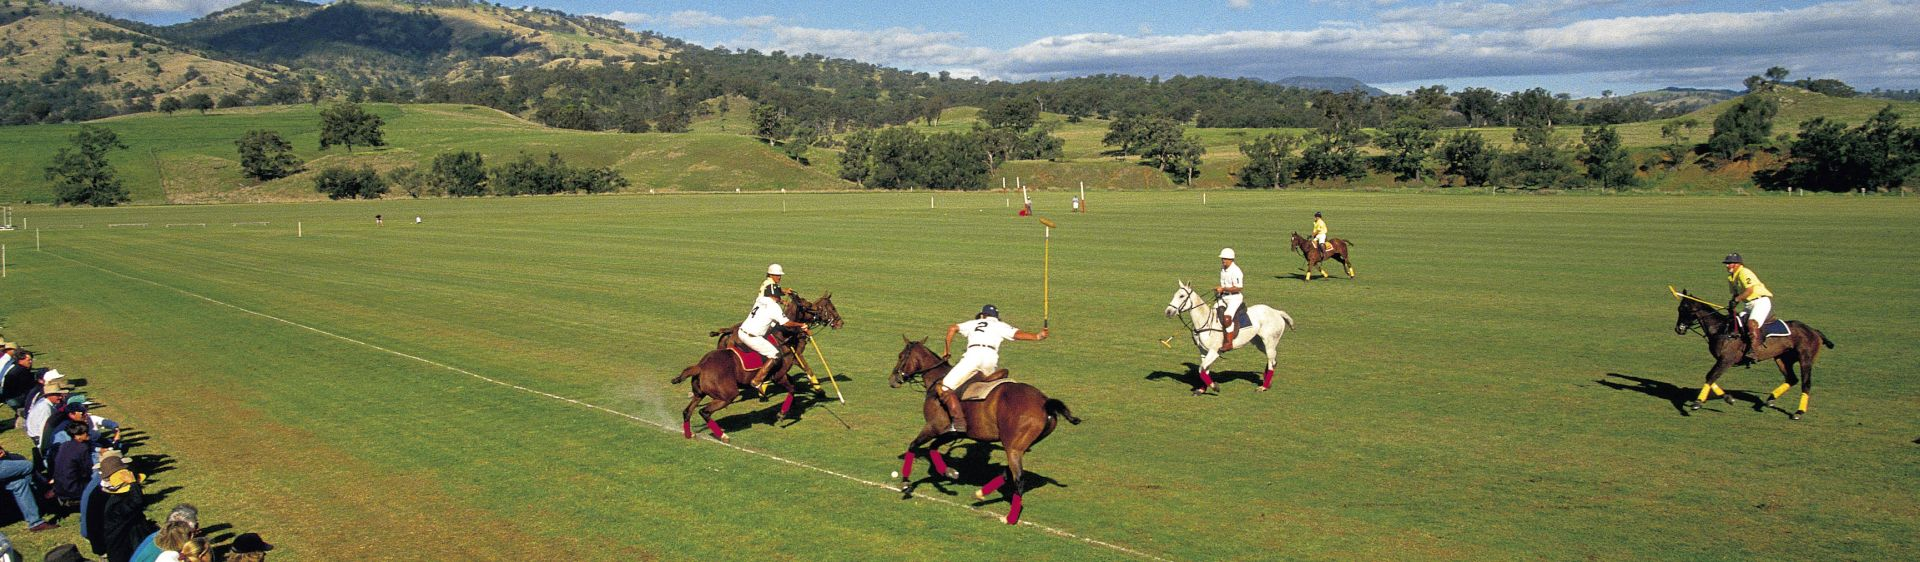 Polo match in the beautiful town of Scone